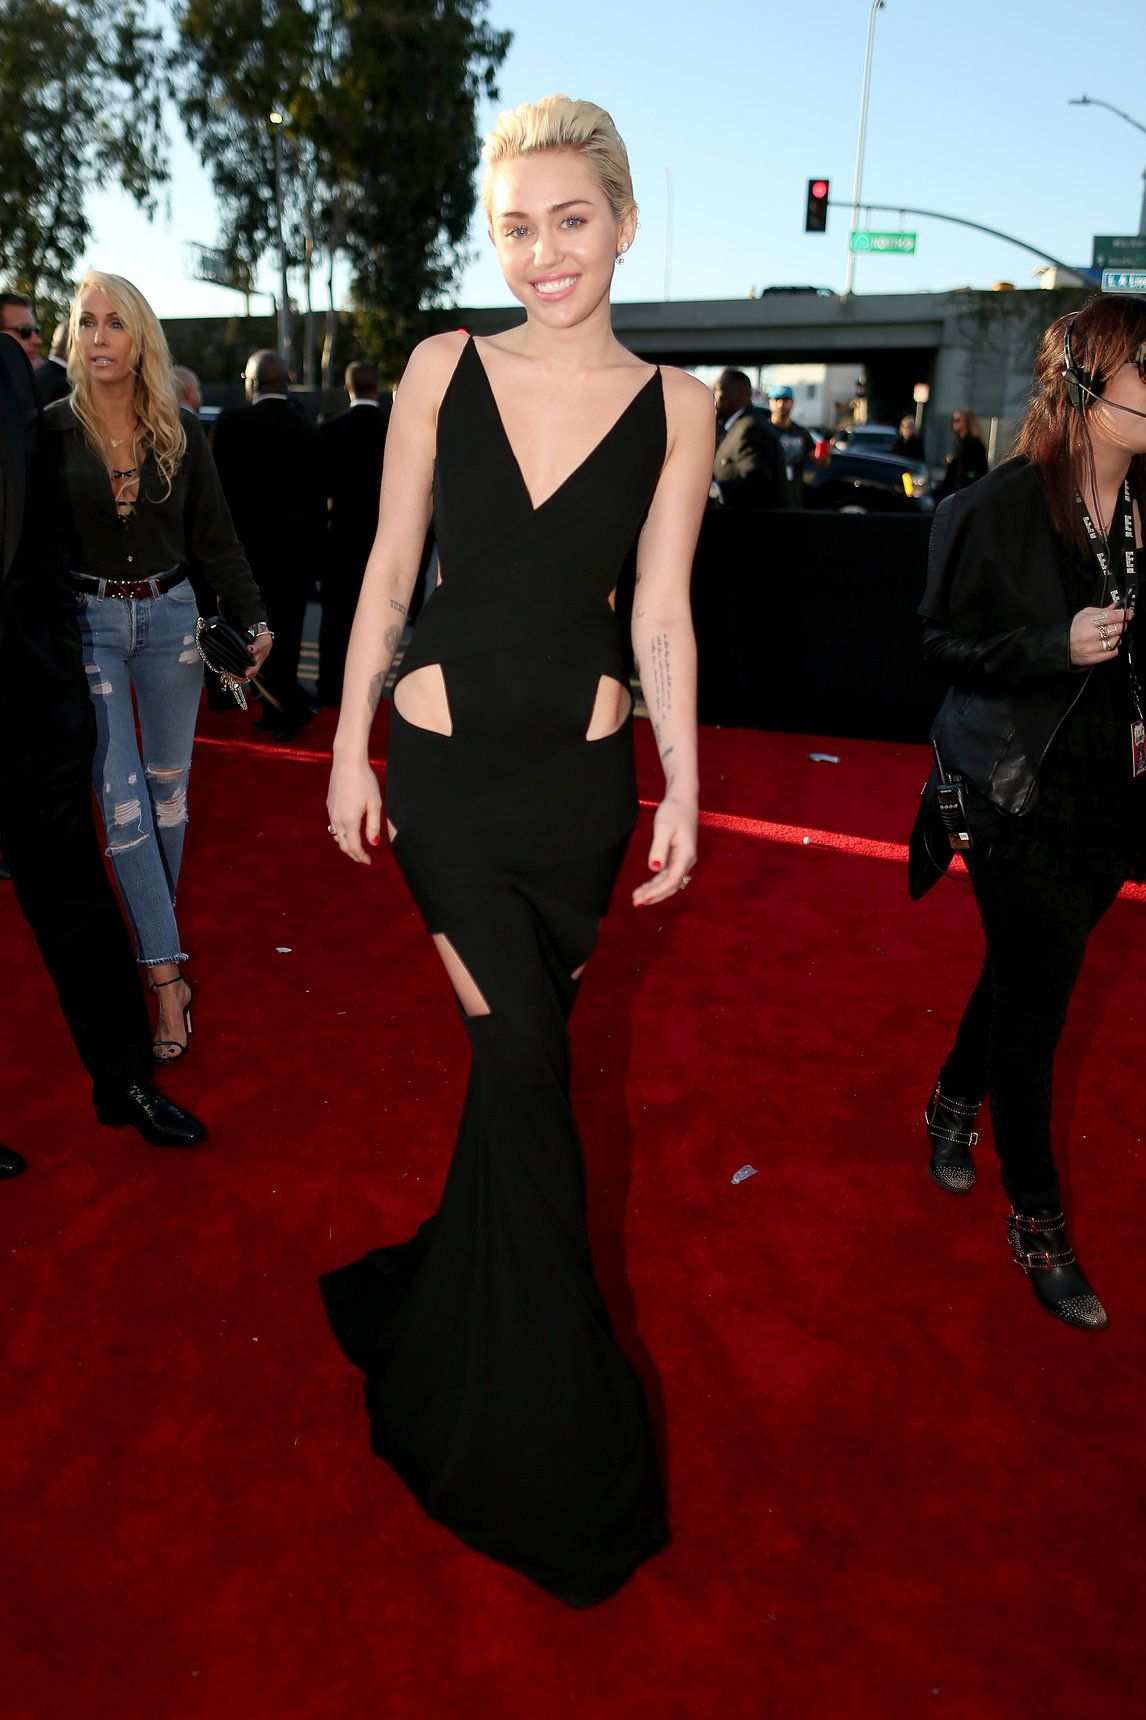 Miley Cyrus Alfombra Roja Grammys 2015 Fashionlive From The Red Carpet Red